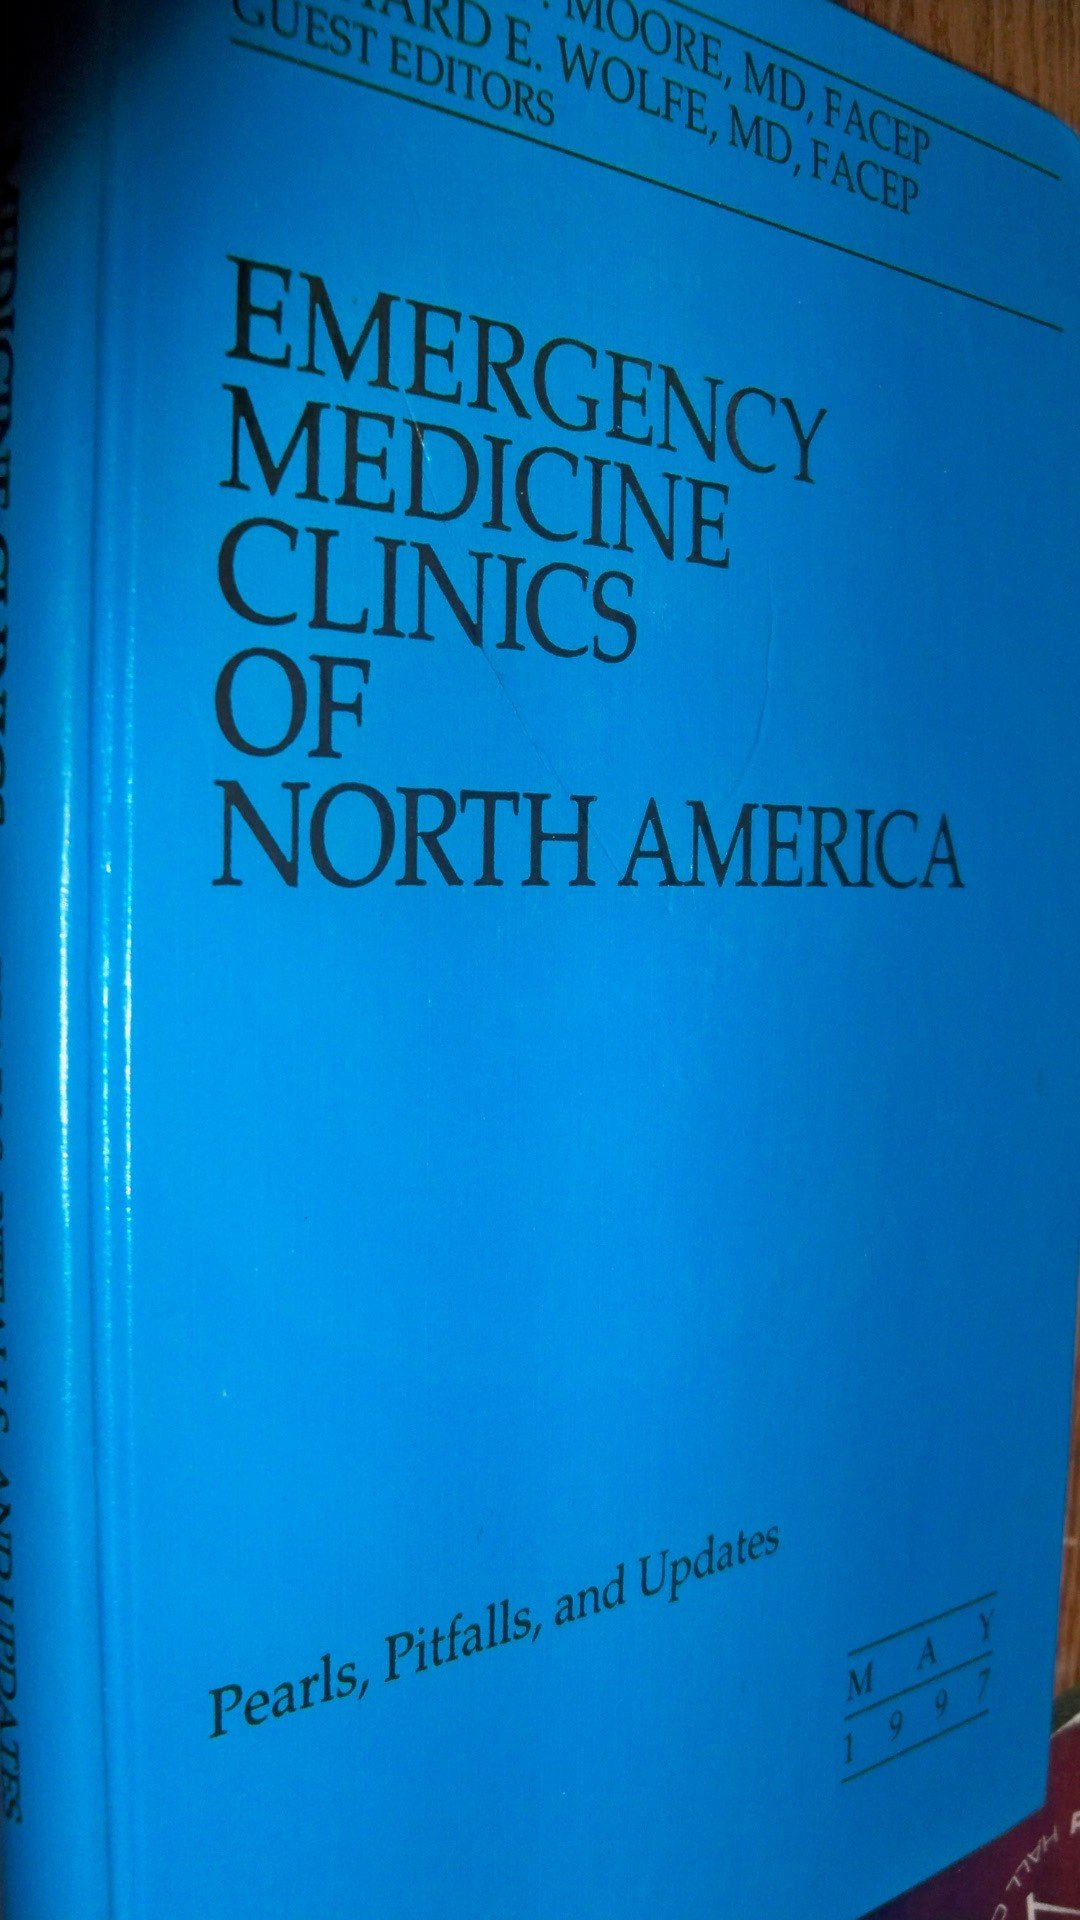 Emergency Medicine Clinics of North America -- Pearls